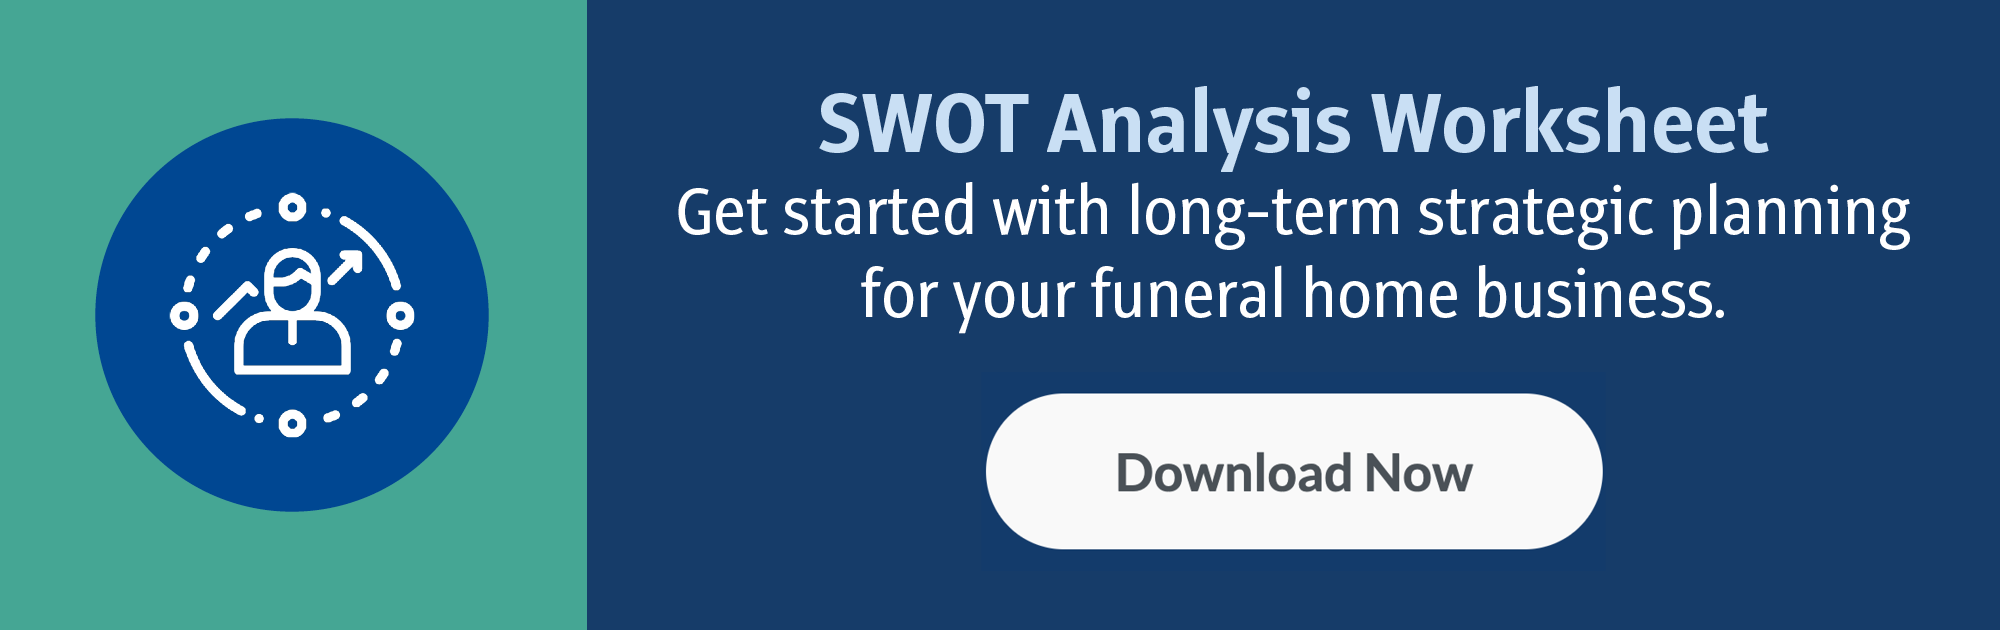 SWOT Analysis Worksheet: Get started with long-term strategic planning for your funeral home business. (Download Now)